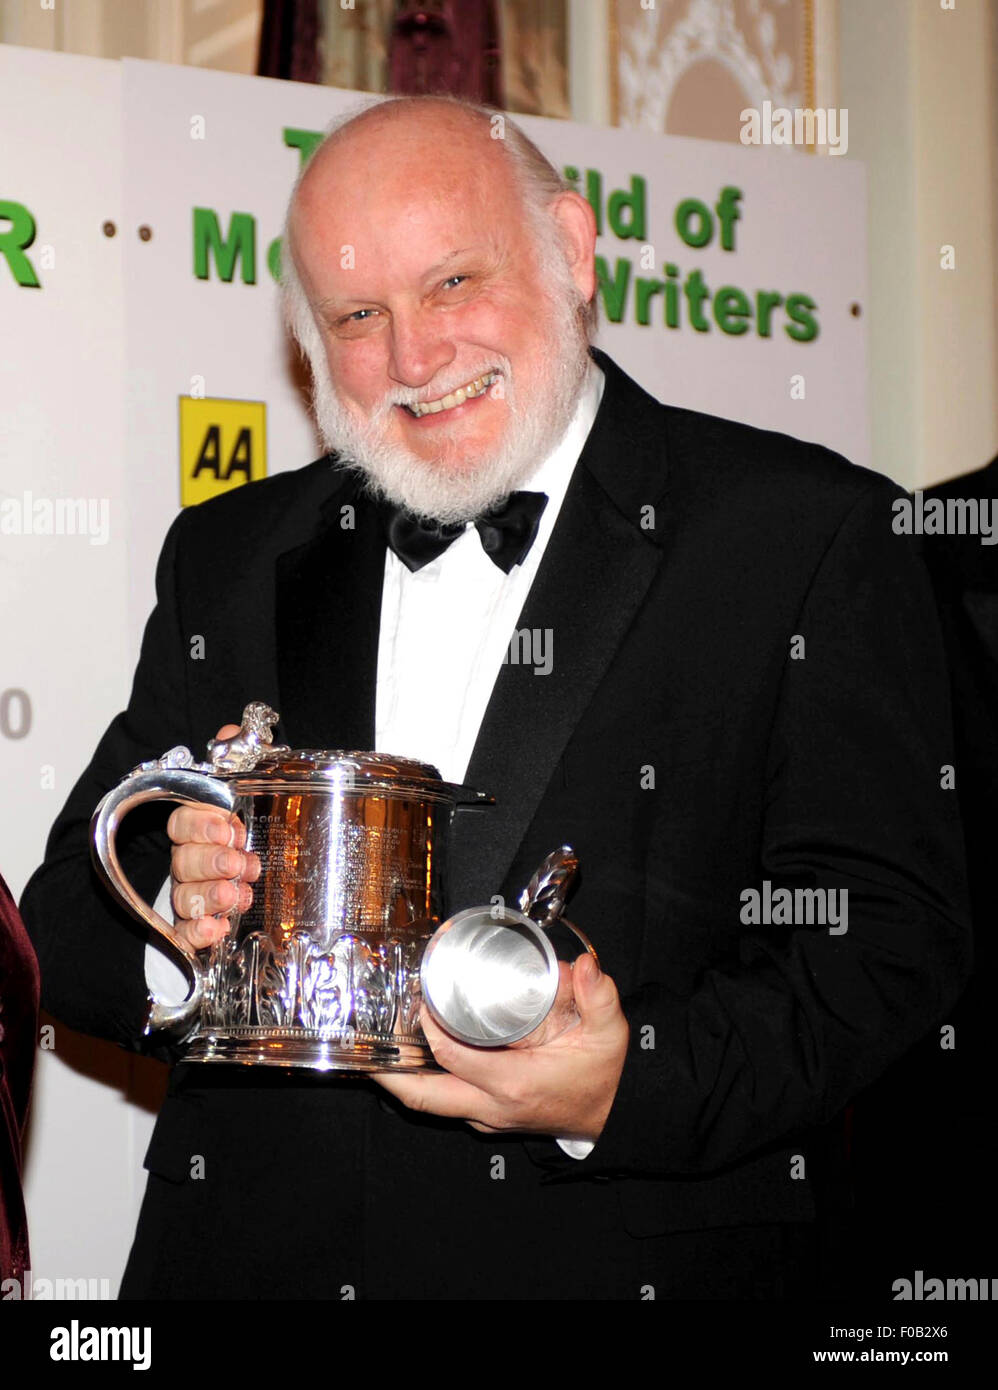 Doug Nye at the annual awards ceremony of the Motoring Writers Guild 2010 - Stock Image